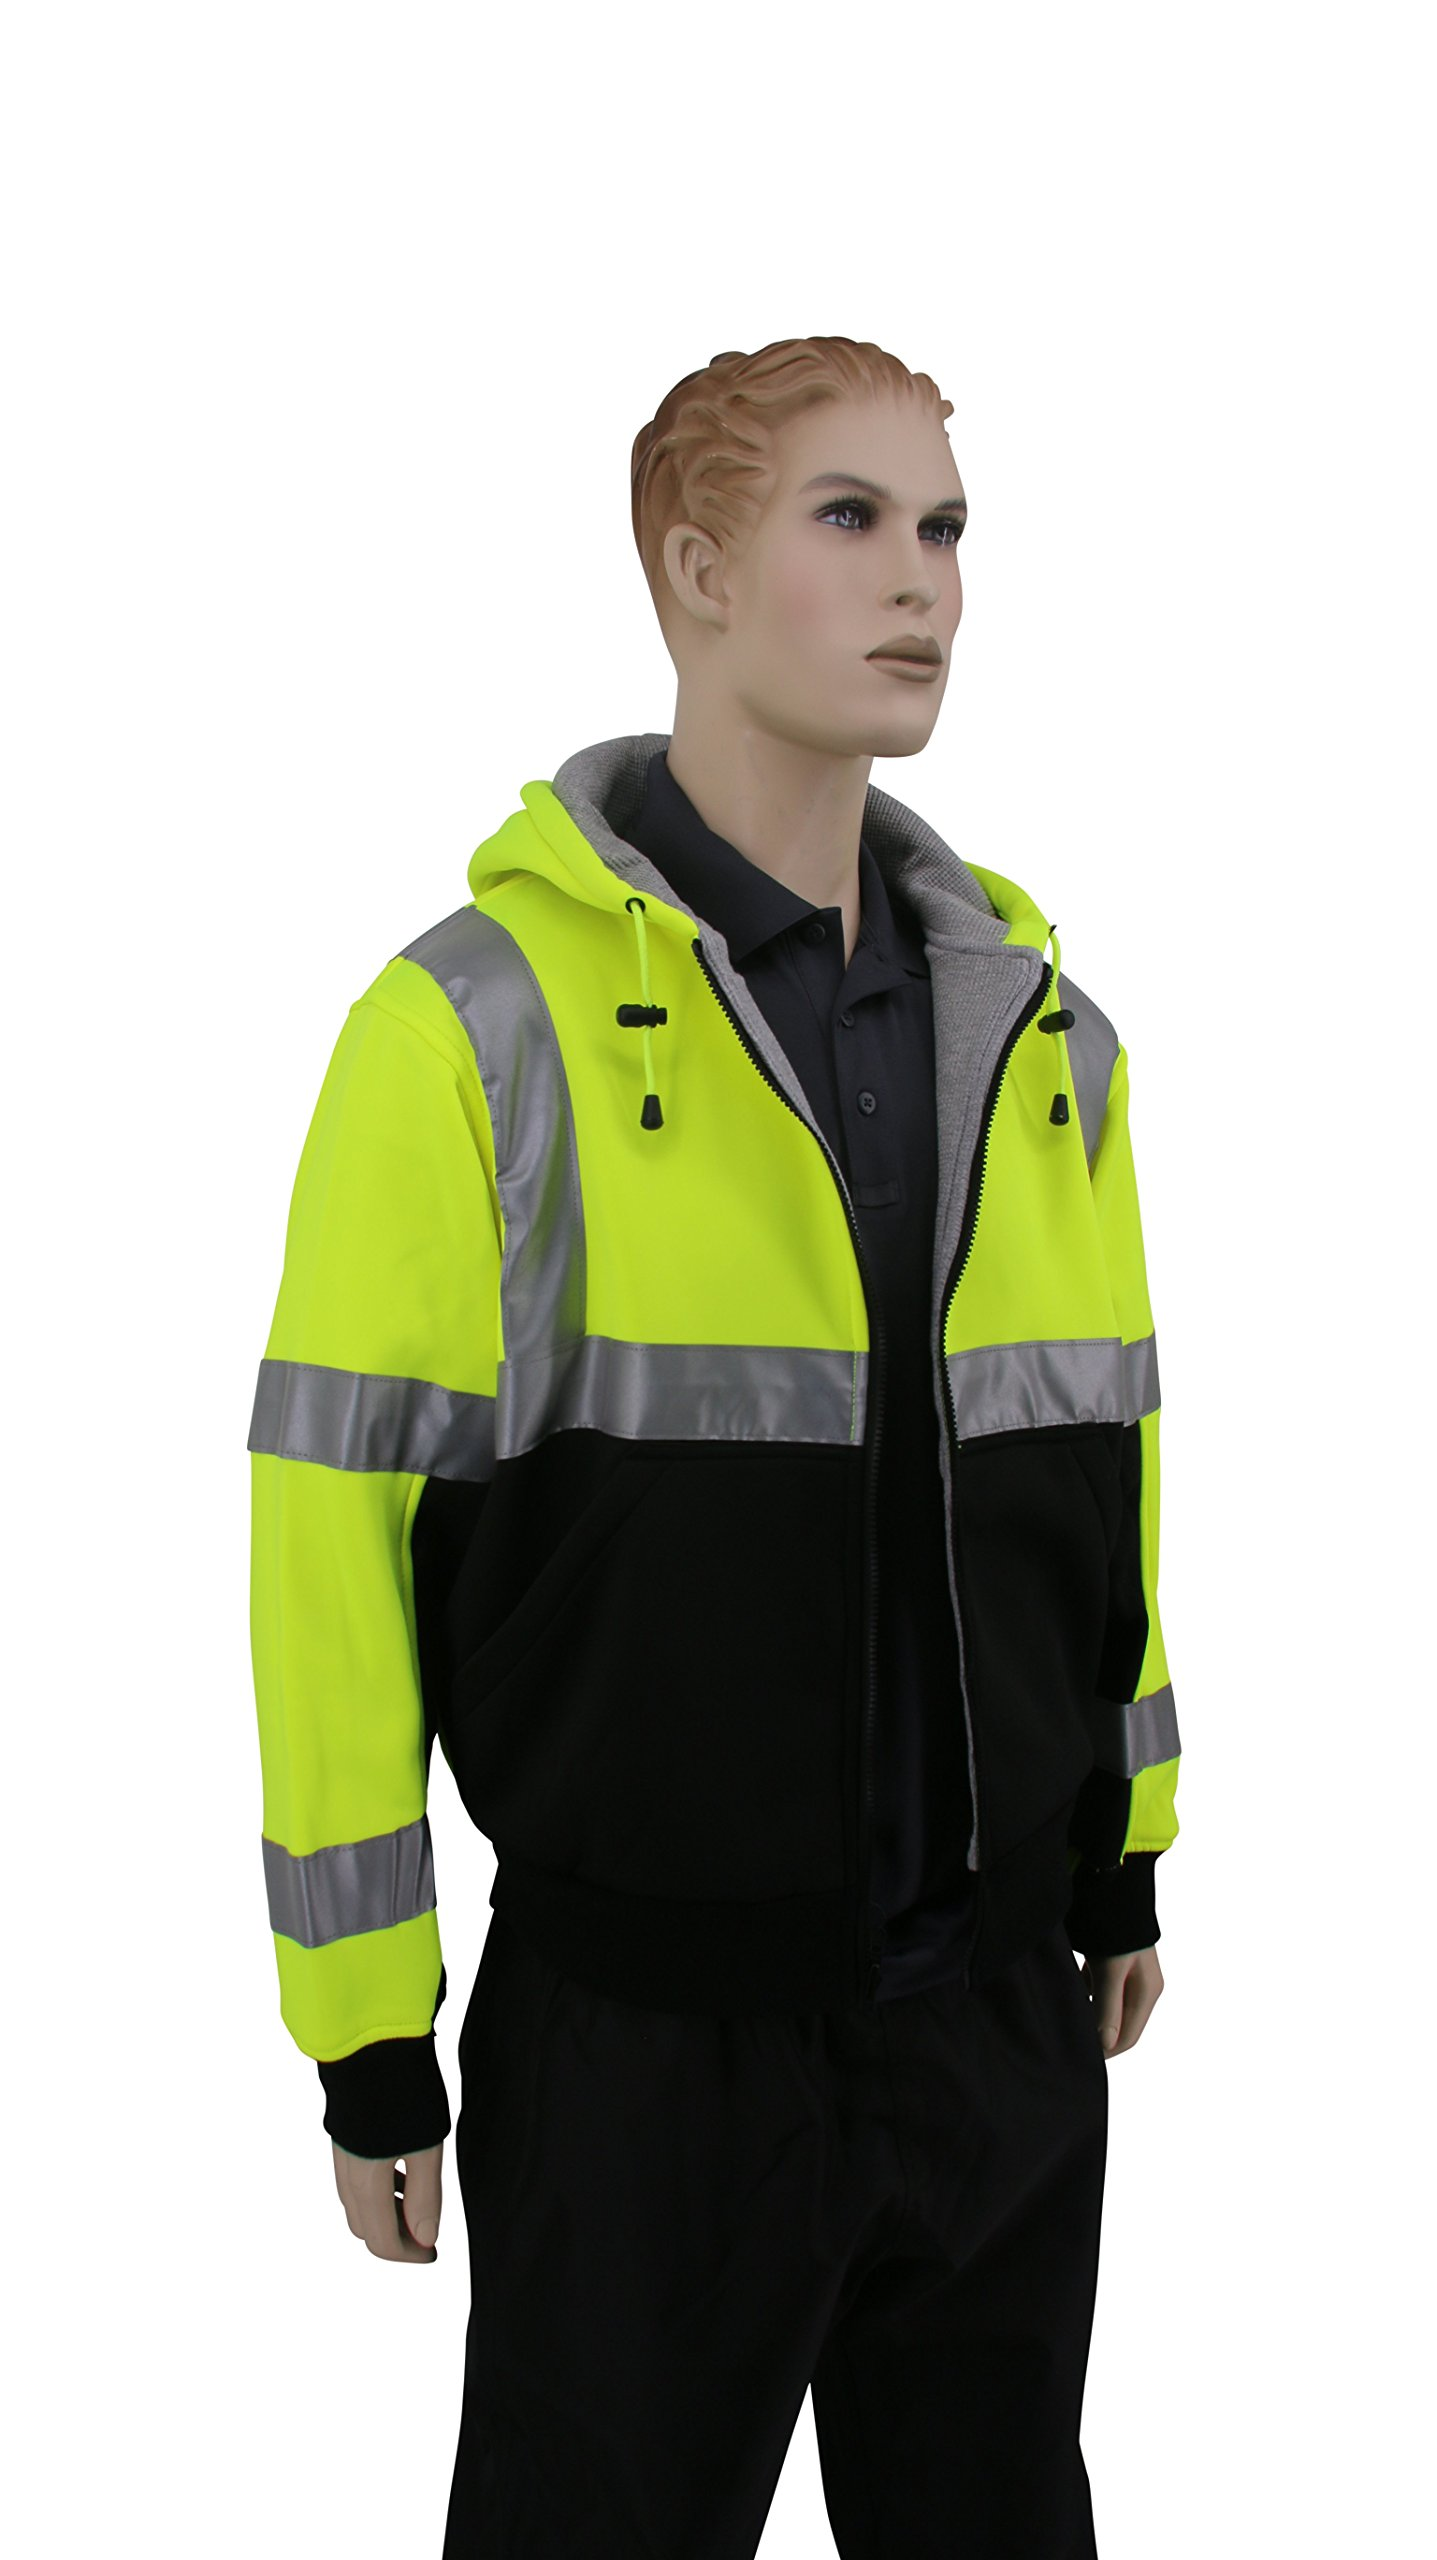 Brite Safety Style 5010 Hi Viz Sweatshirts for Men or Women   Safety Hi Vis Hoodie, 2-Tone Sweatshirt   Thermal Liner, Full Zip 16oz, with 3M Reflective Tape   ANSI 107 Class 3 (4XL) by Brite Safety (Image #3)